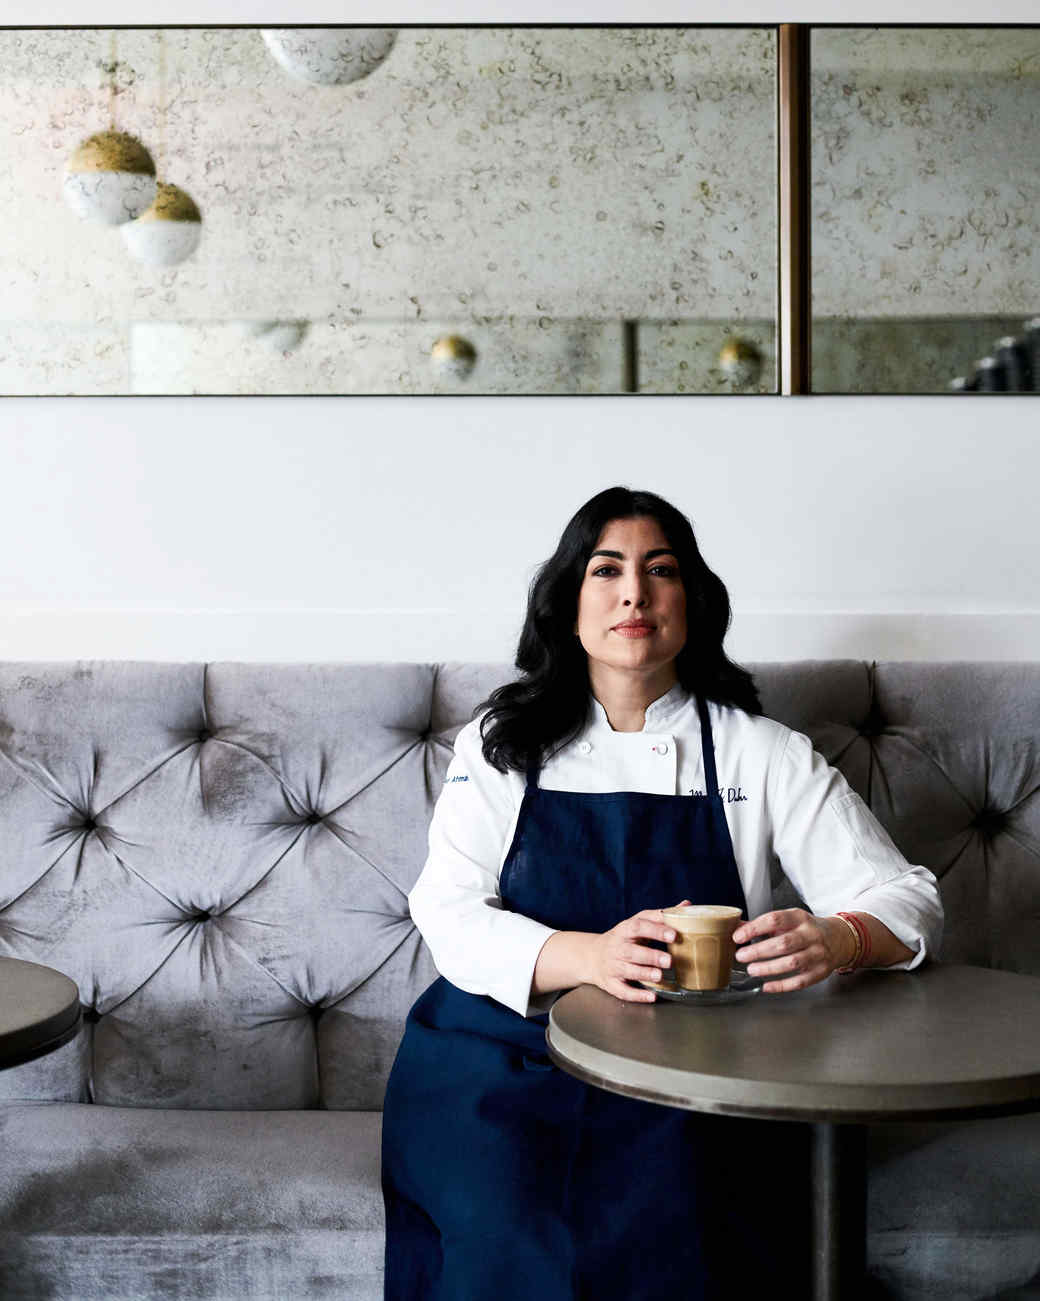 portrait of pastry chef umber ahmad sitting with a cappuccino